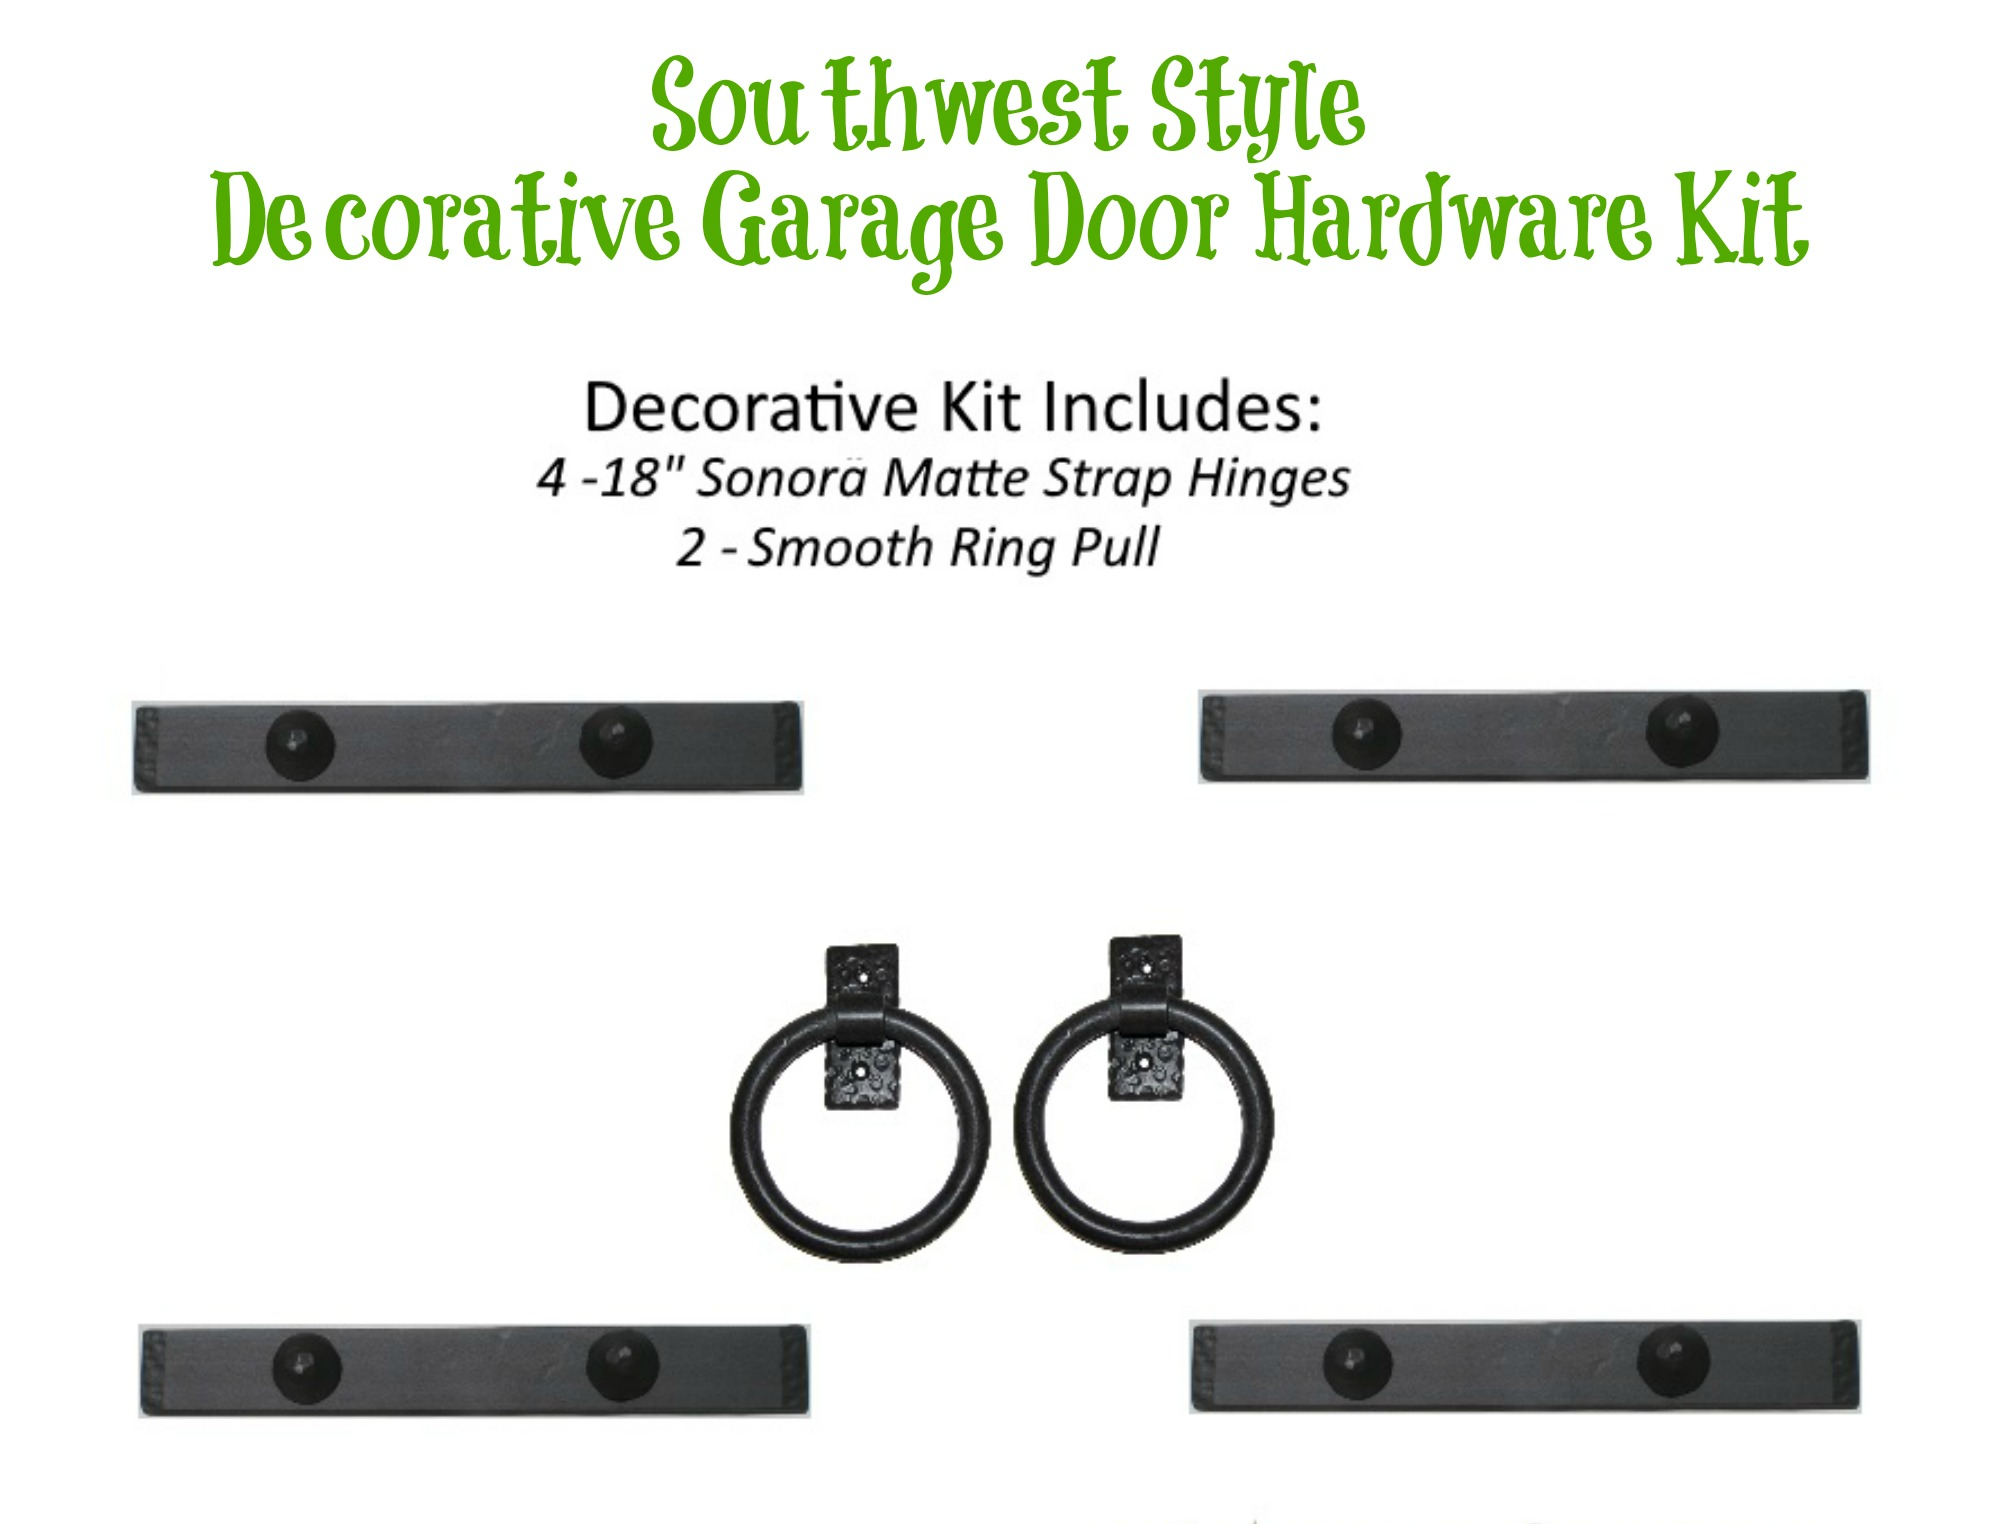 Beau Southwest Style Decorative Garage Door Hardware Kit